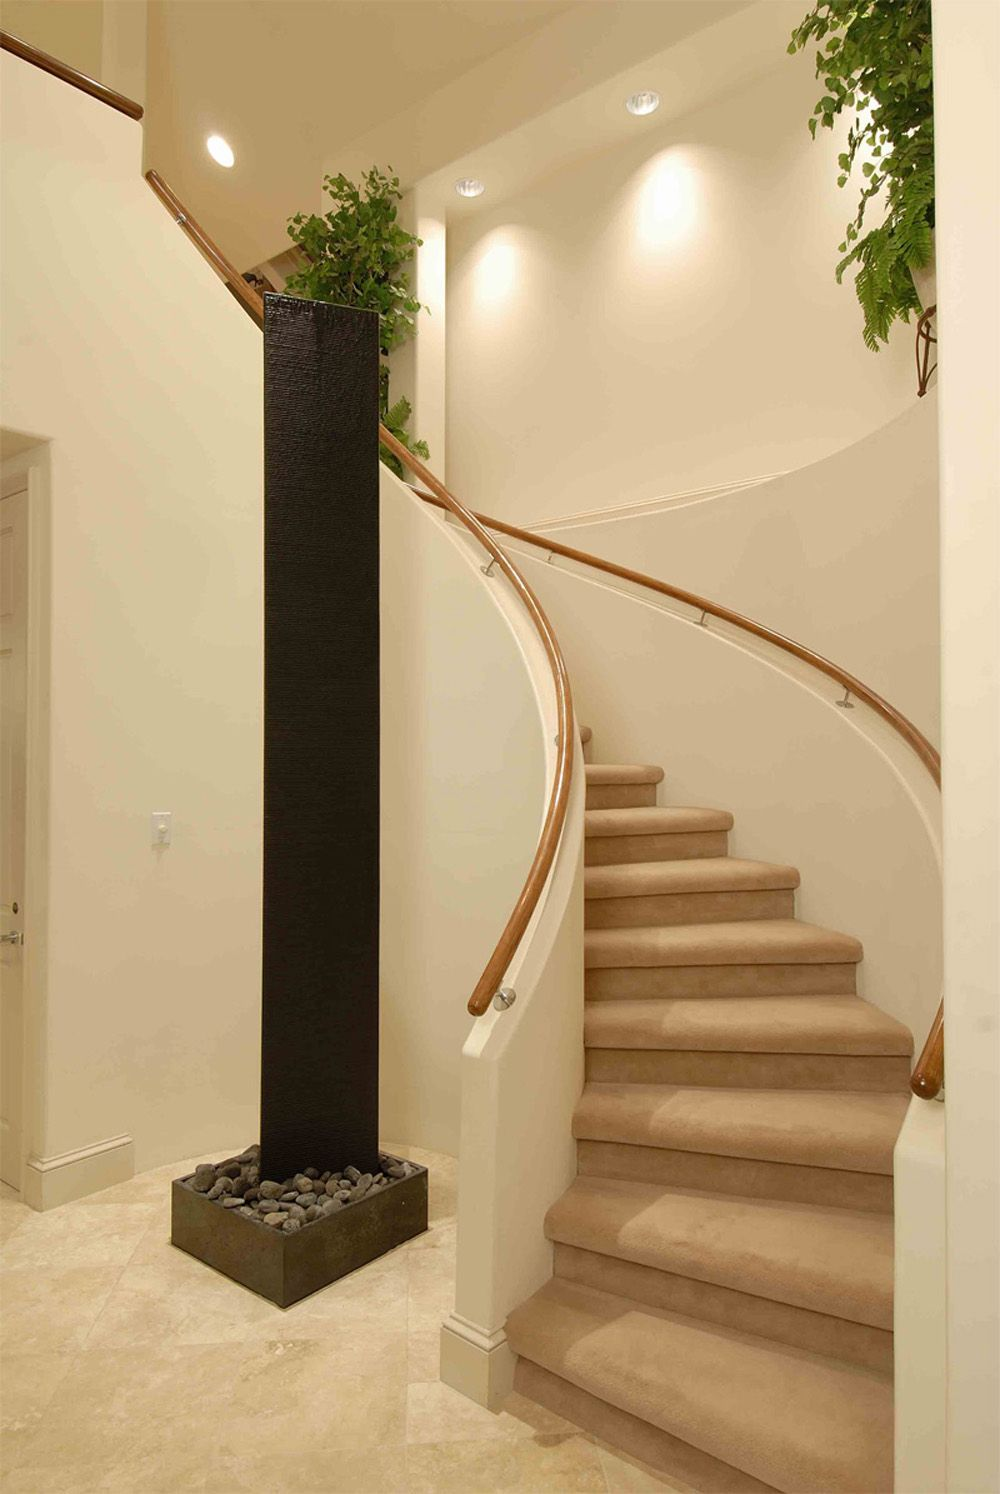 23 Unique Painted Staircase Ideas for Your Perfect Home | Painted ...